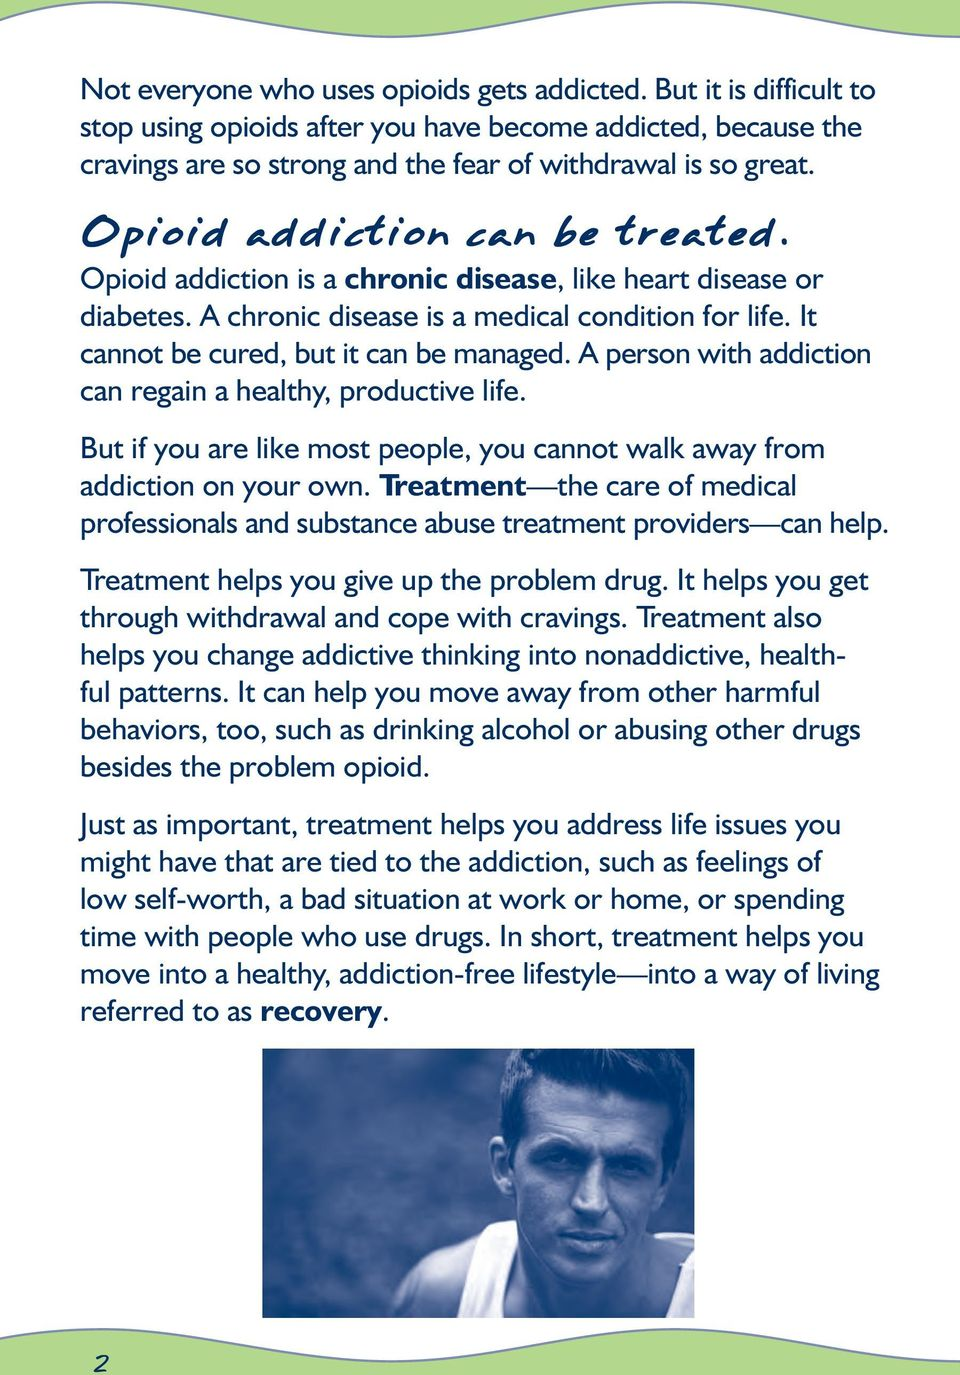 A person with addiction can regain a healthy, productive life. But if you are like most people, you cannot walk away from addiction on your own.